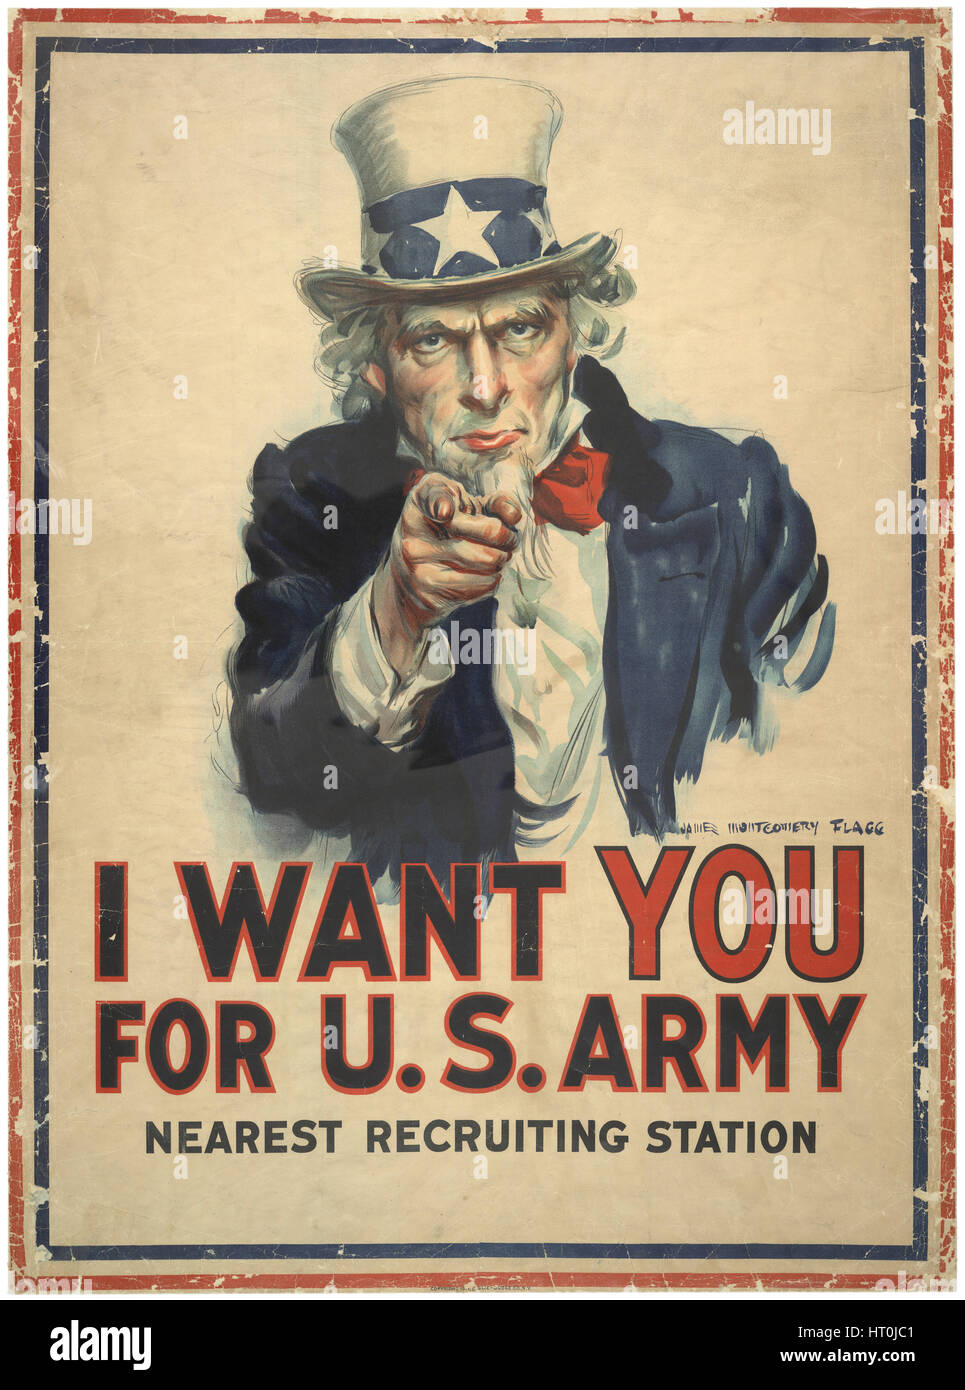 World War I recruiting poster for the the U.S. Army featuring Uncle Sam by artist James Montgomery Flag, c1917. - Stock Image